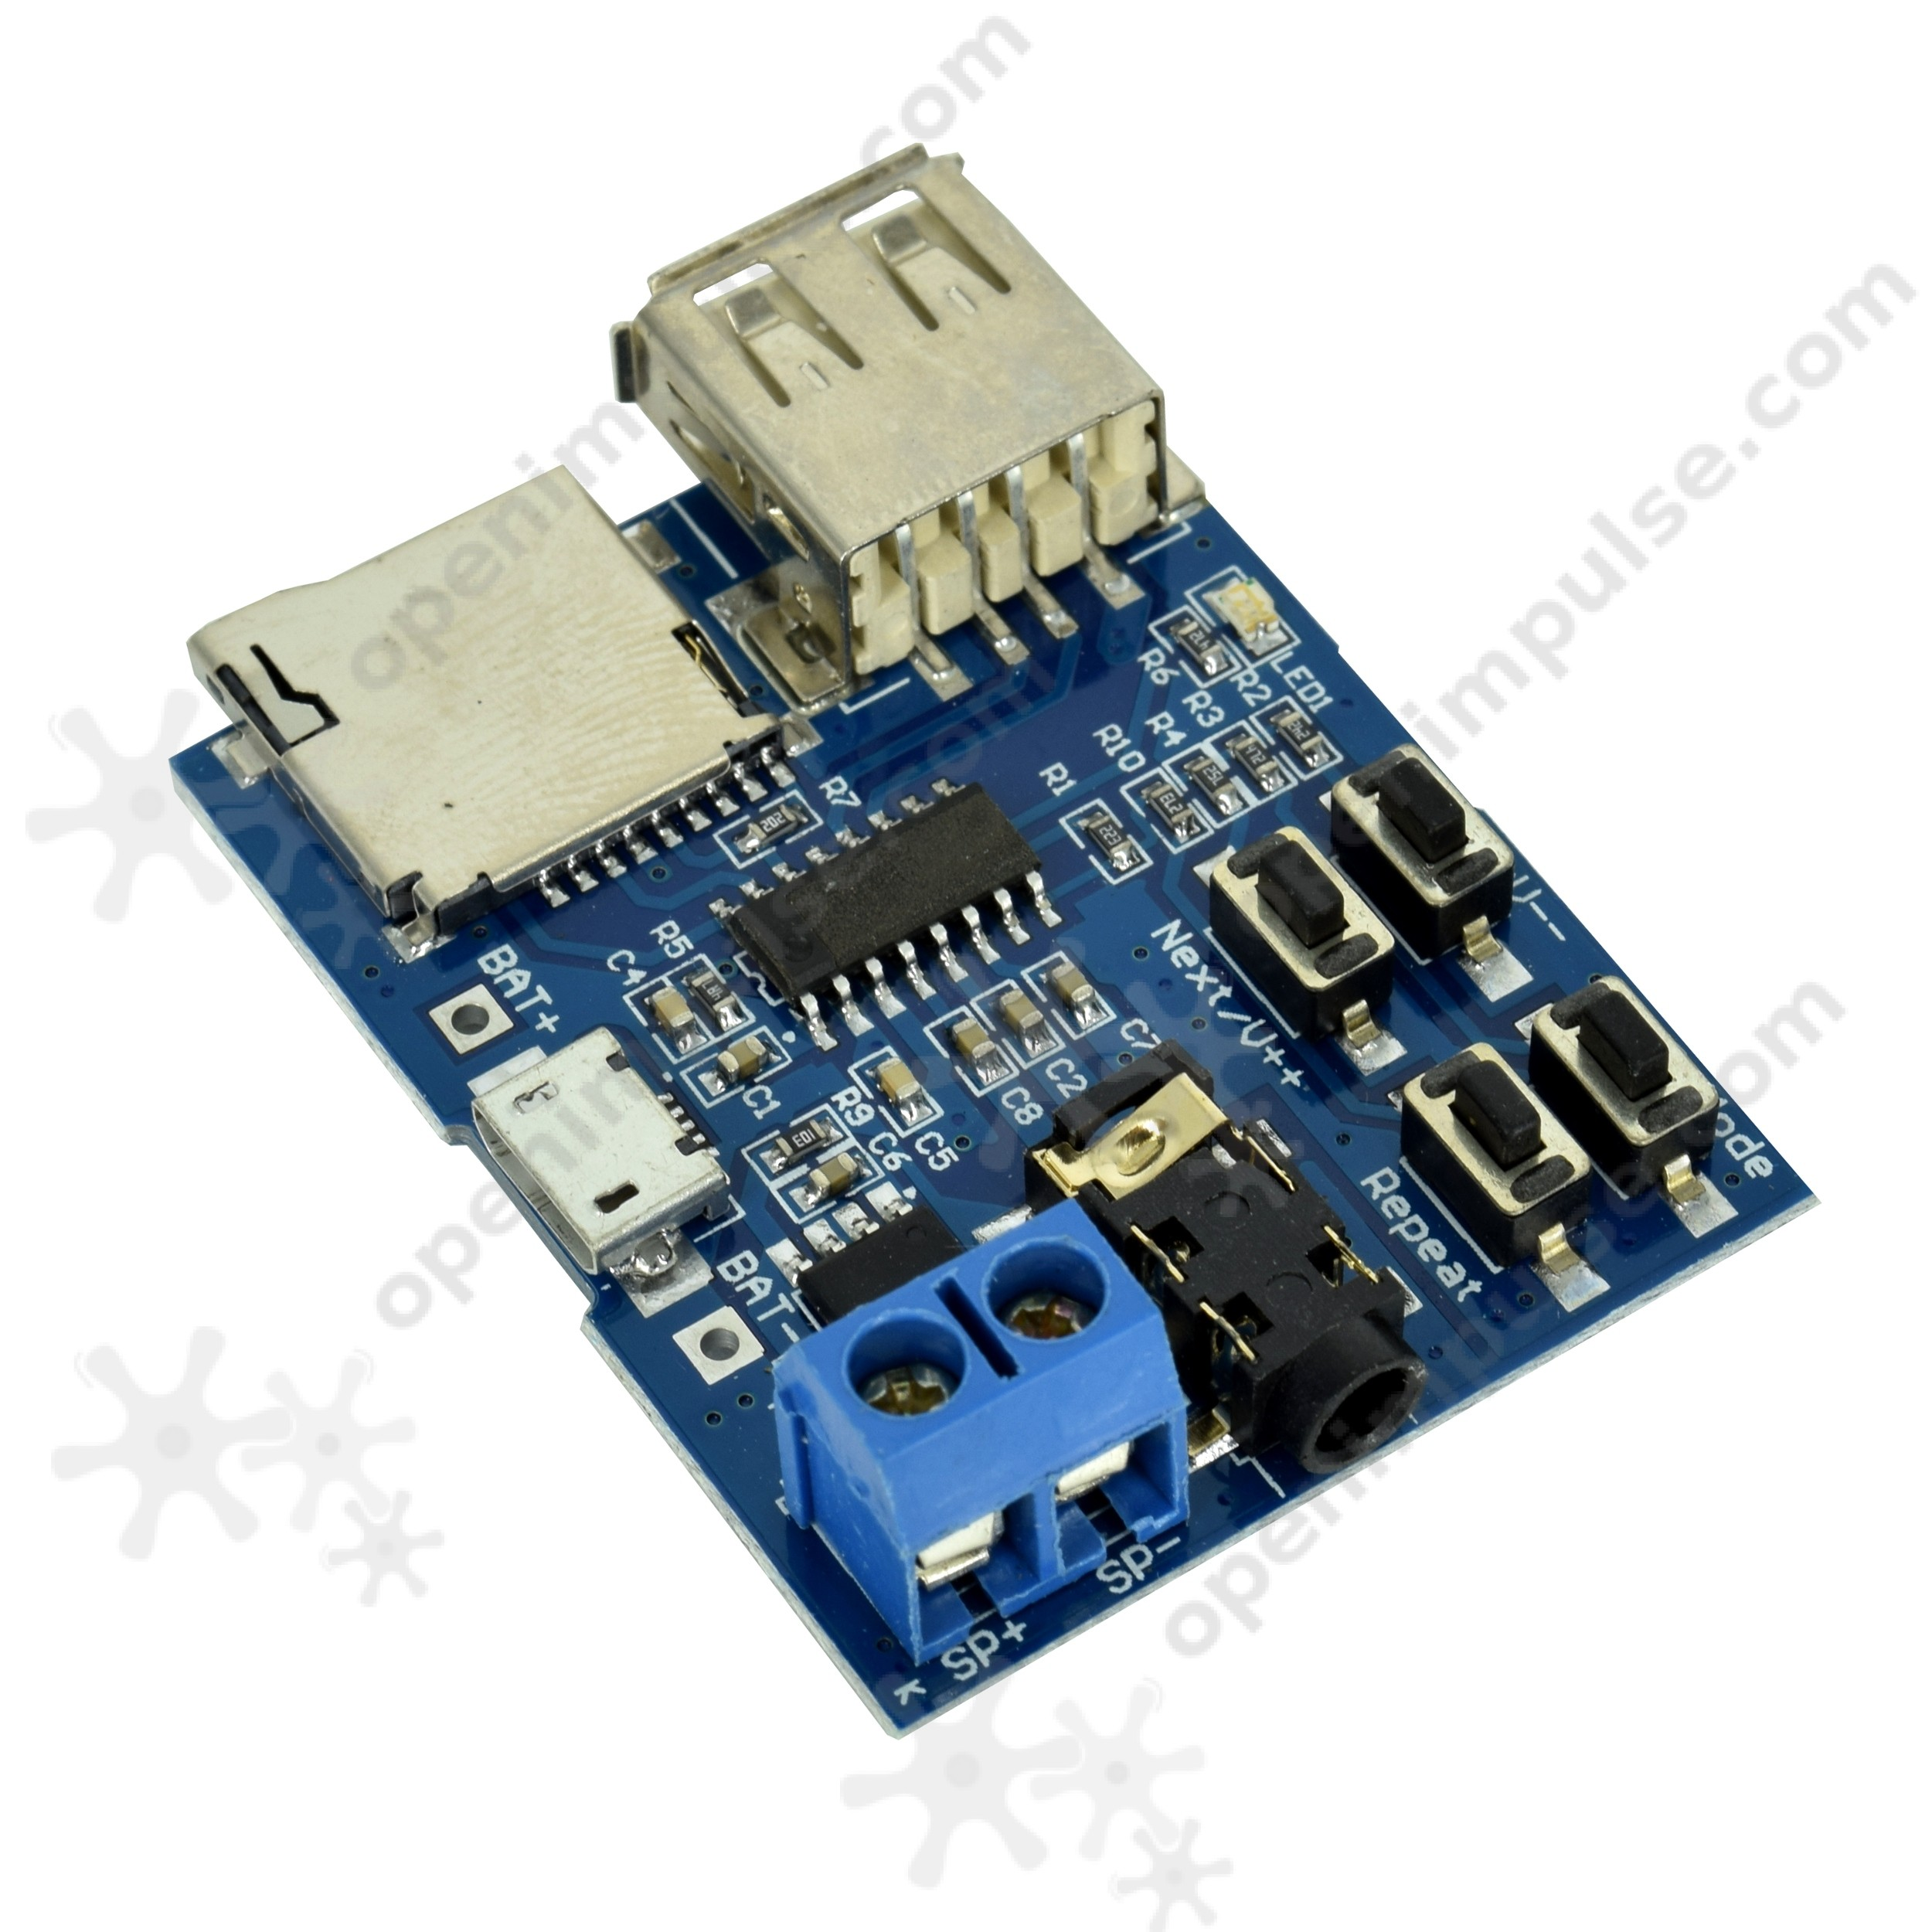 MP3 Player Module with 2W Onboard Amplifier | Open